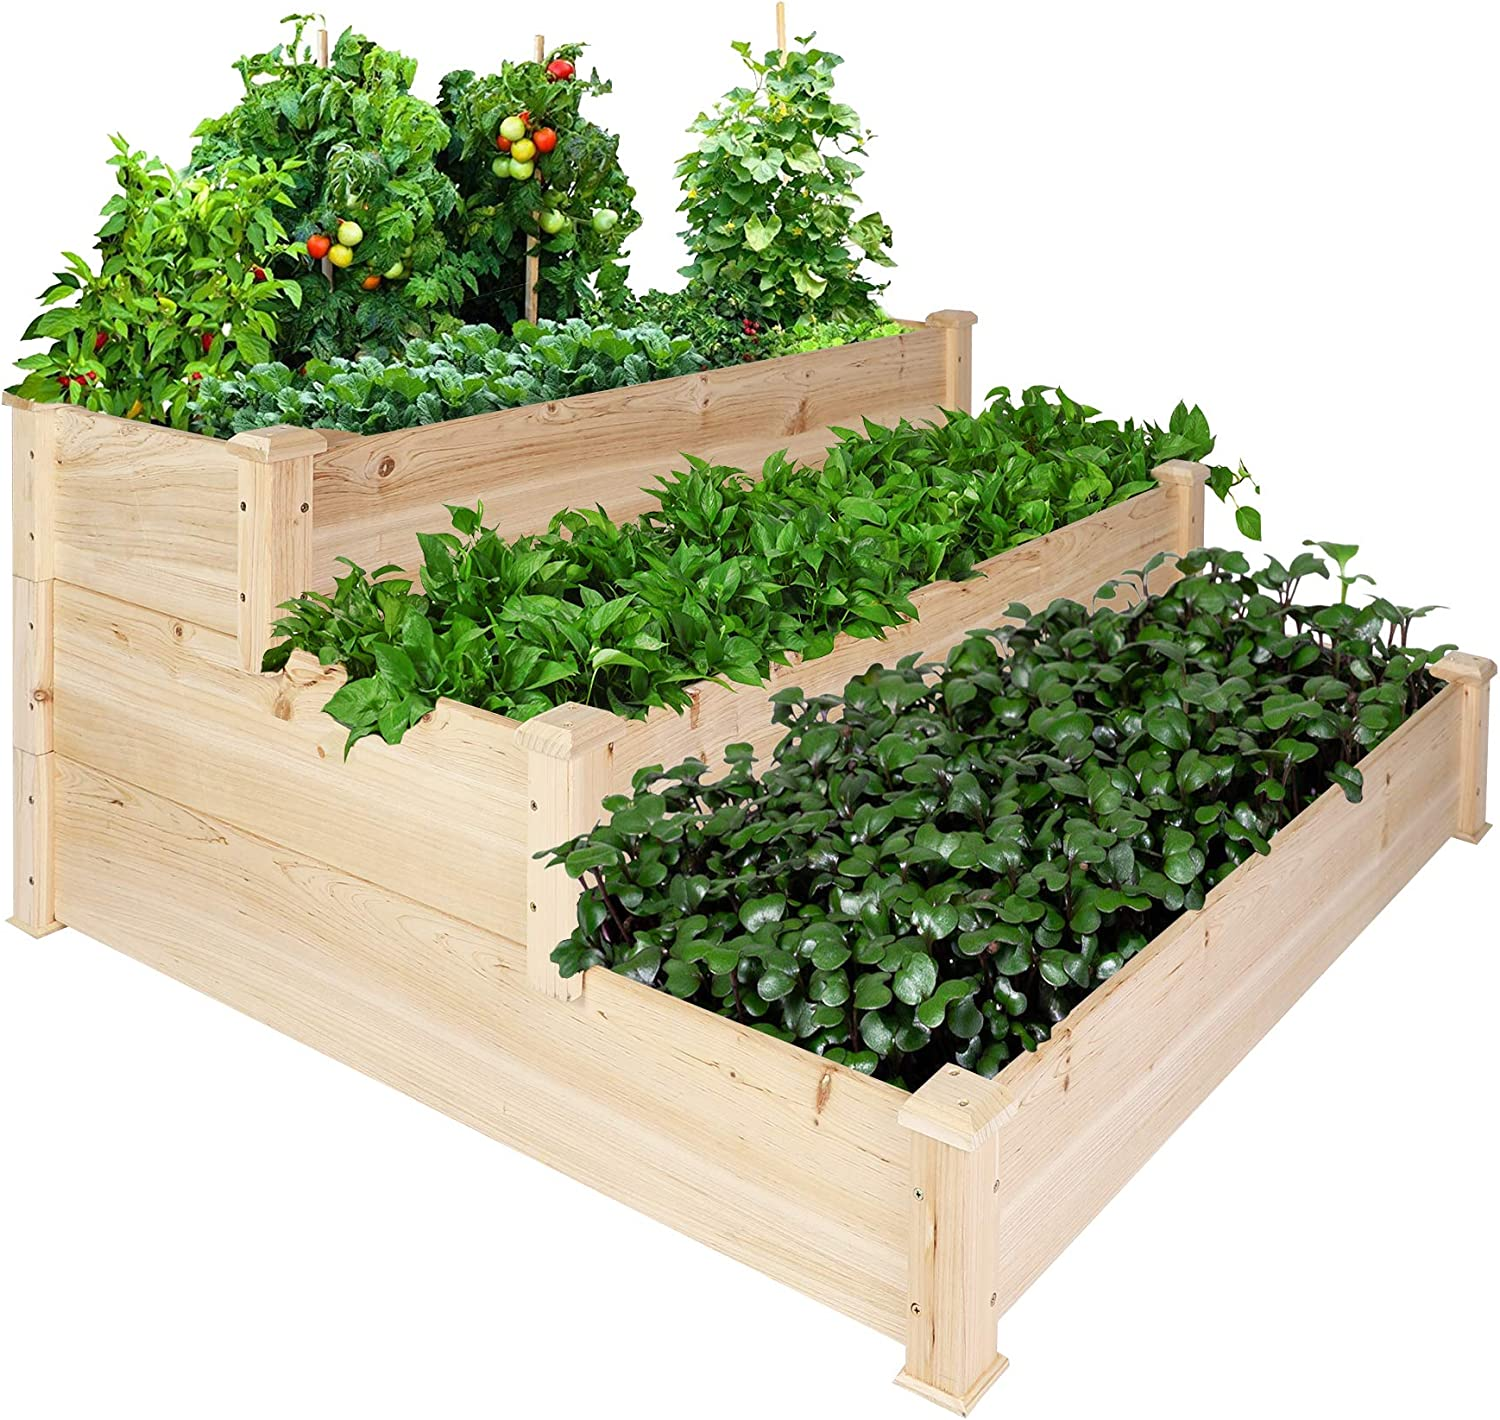 """LONABR 3 Tier Raised Garden Bed,47"""" x 46.5"""" x 22"""" Elevated Wood Planter Box Stand Customizable Herb Garden Outdoor Patio for Vegetables Flower,Natural"""